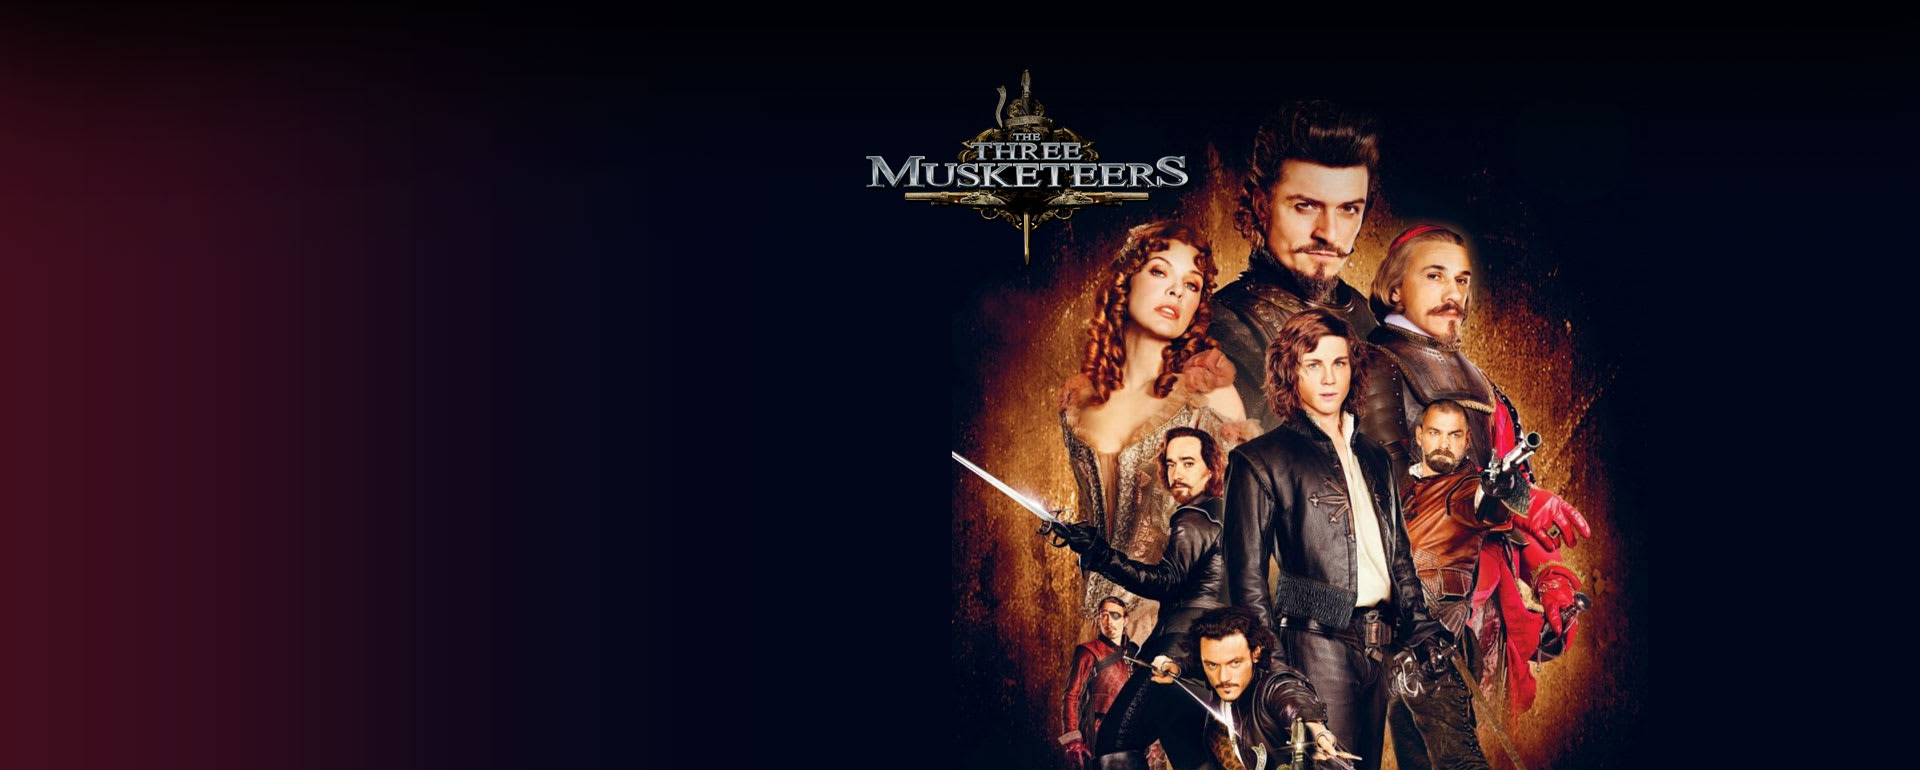 the three musketeers full movie online